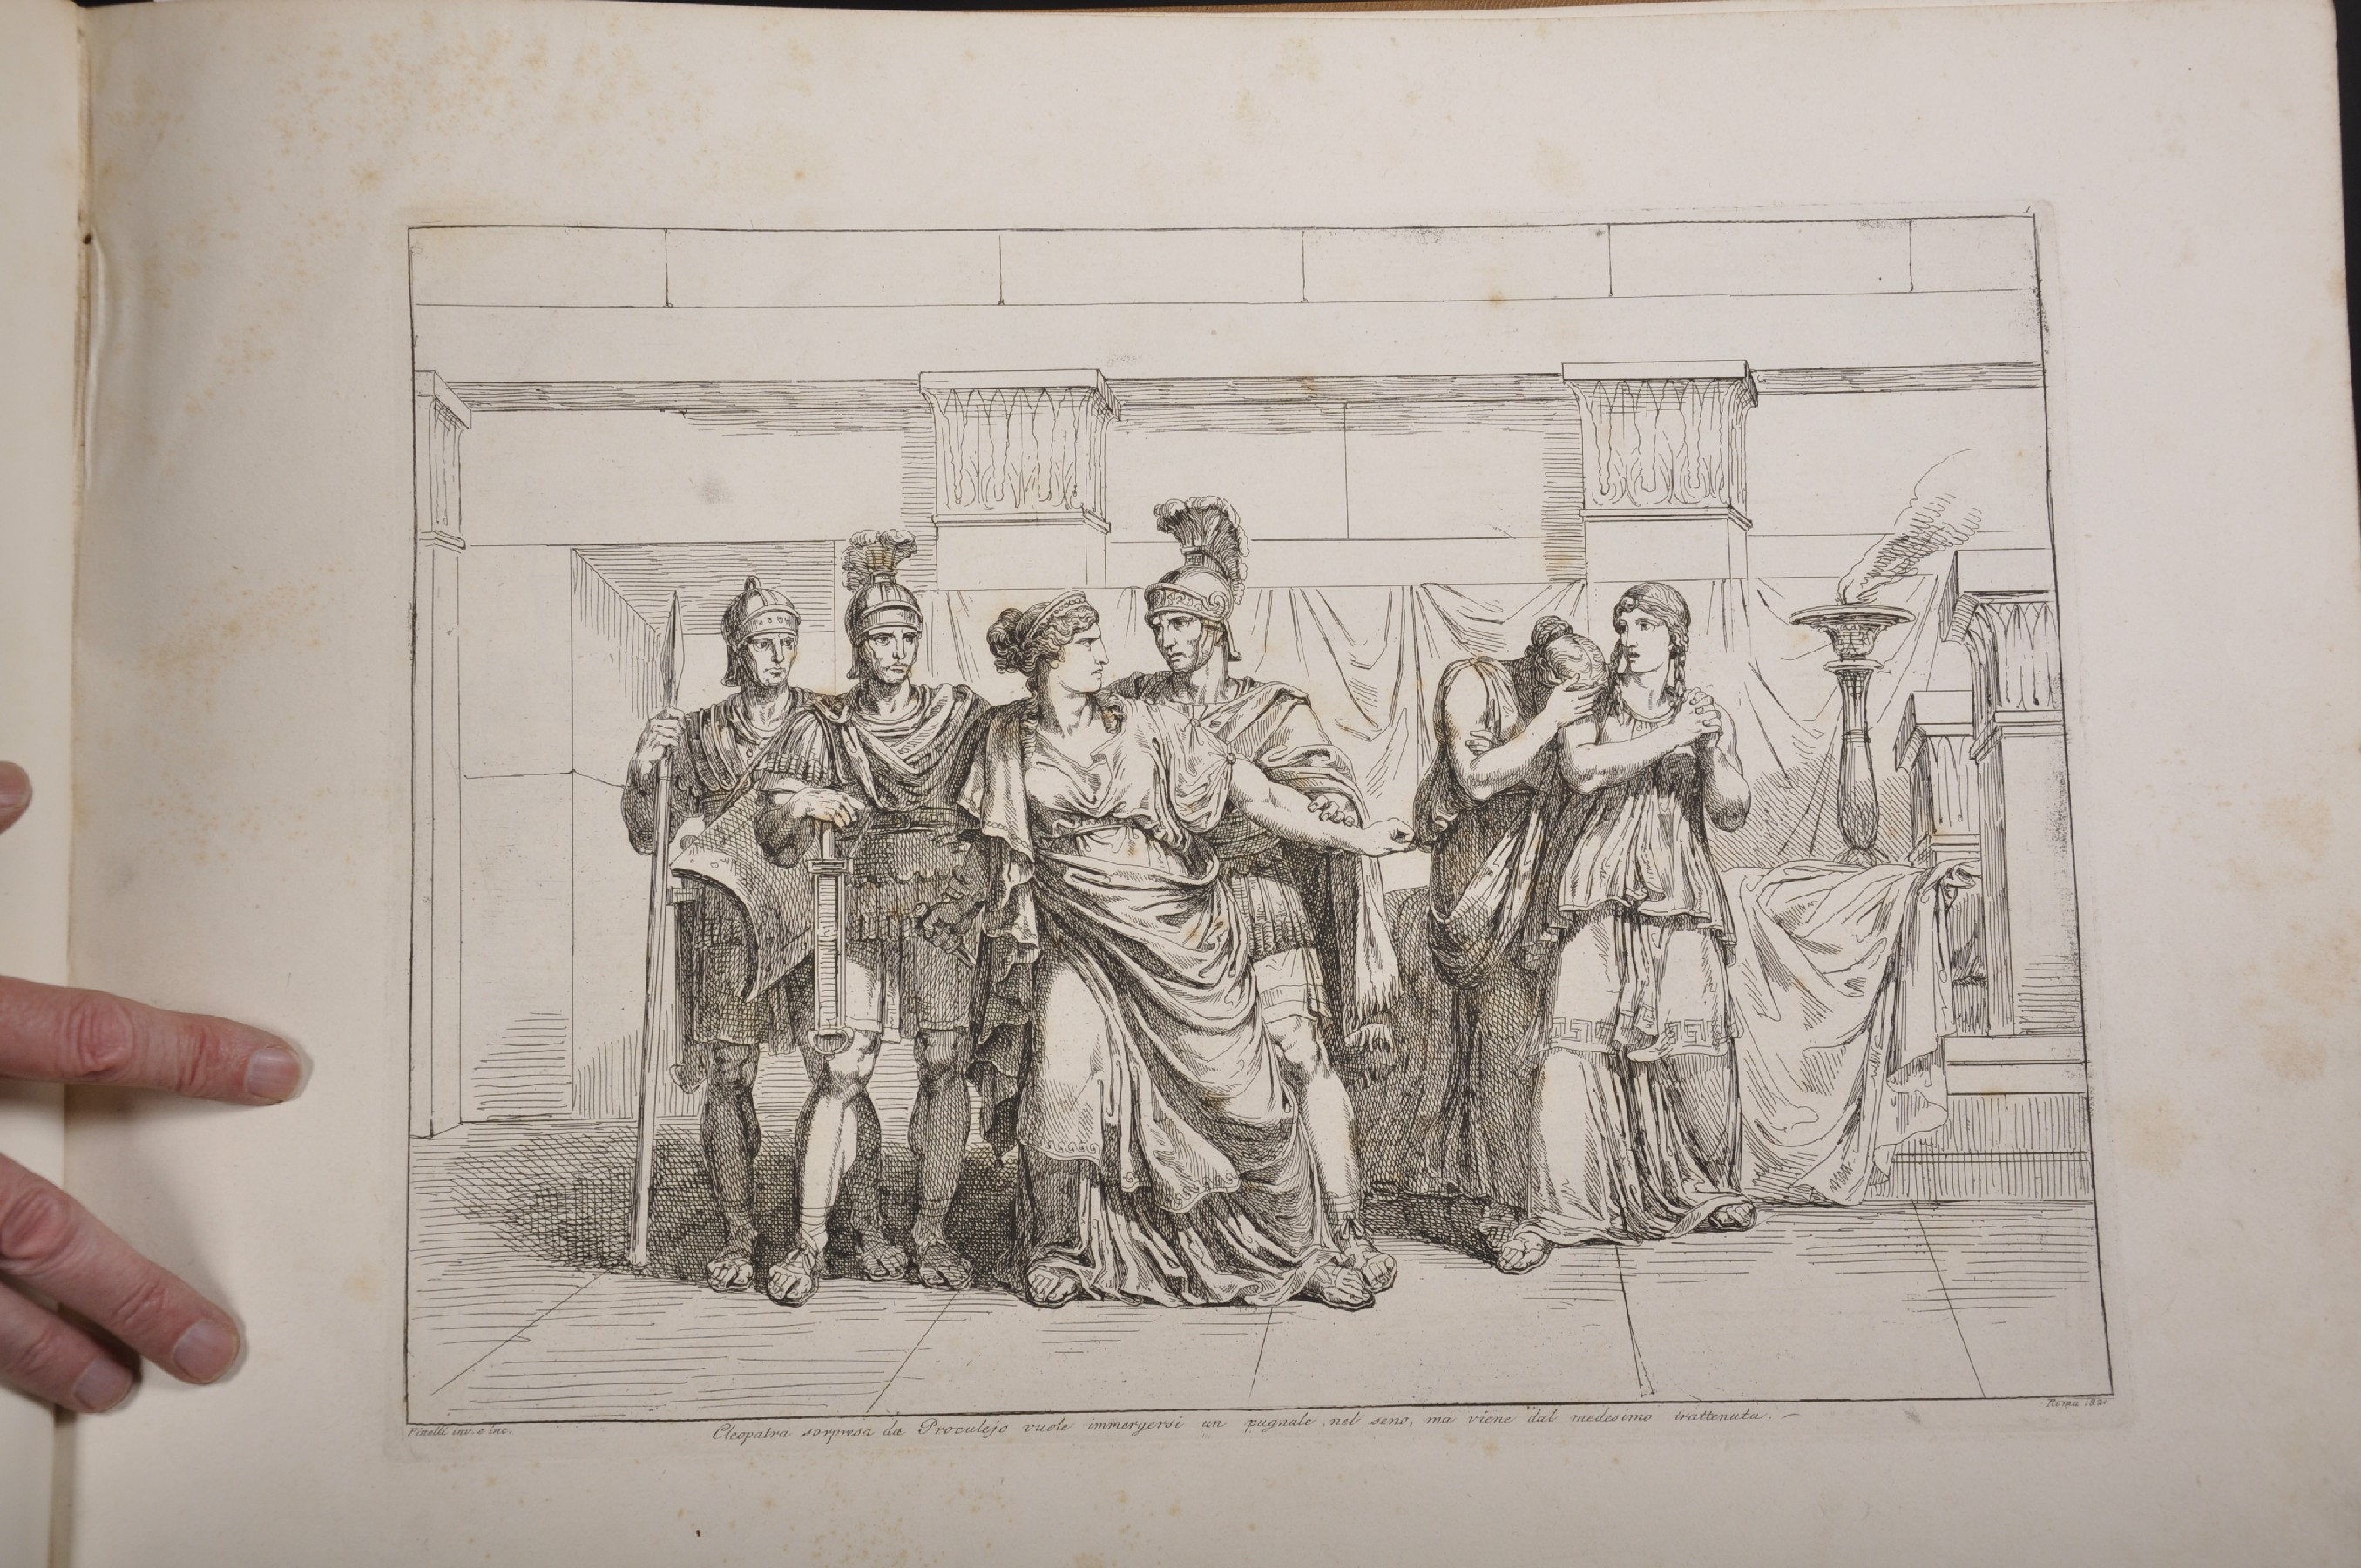 """After Bartolomeo Pinelli (1771-1835) Italian. """"Cleopatra"""", Engraving, 15"""" x 16.5"""", bound in """" - Image 2 of 8"""